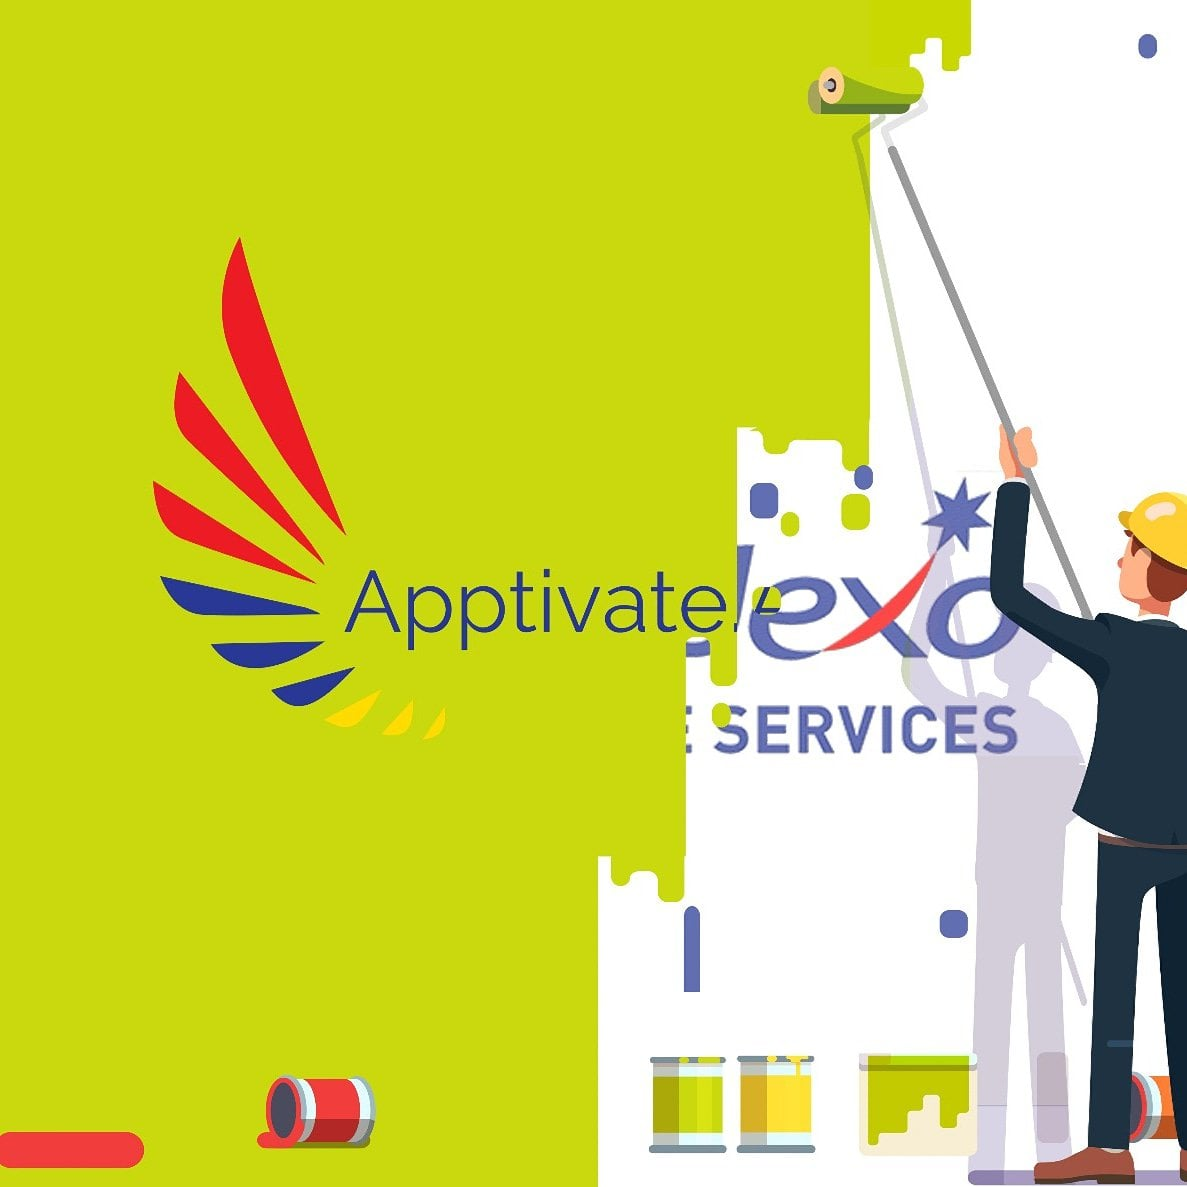 Global Firm Sodexo Kenya Rebrands To Apptivate Africa, Targets More Companies With E-lunch Scheme